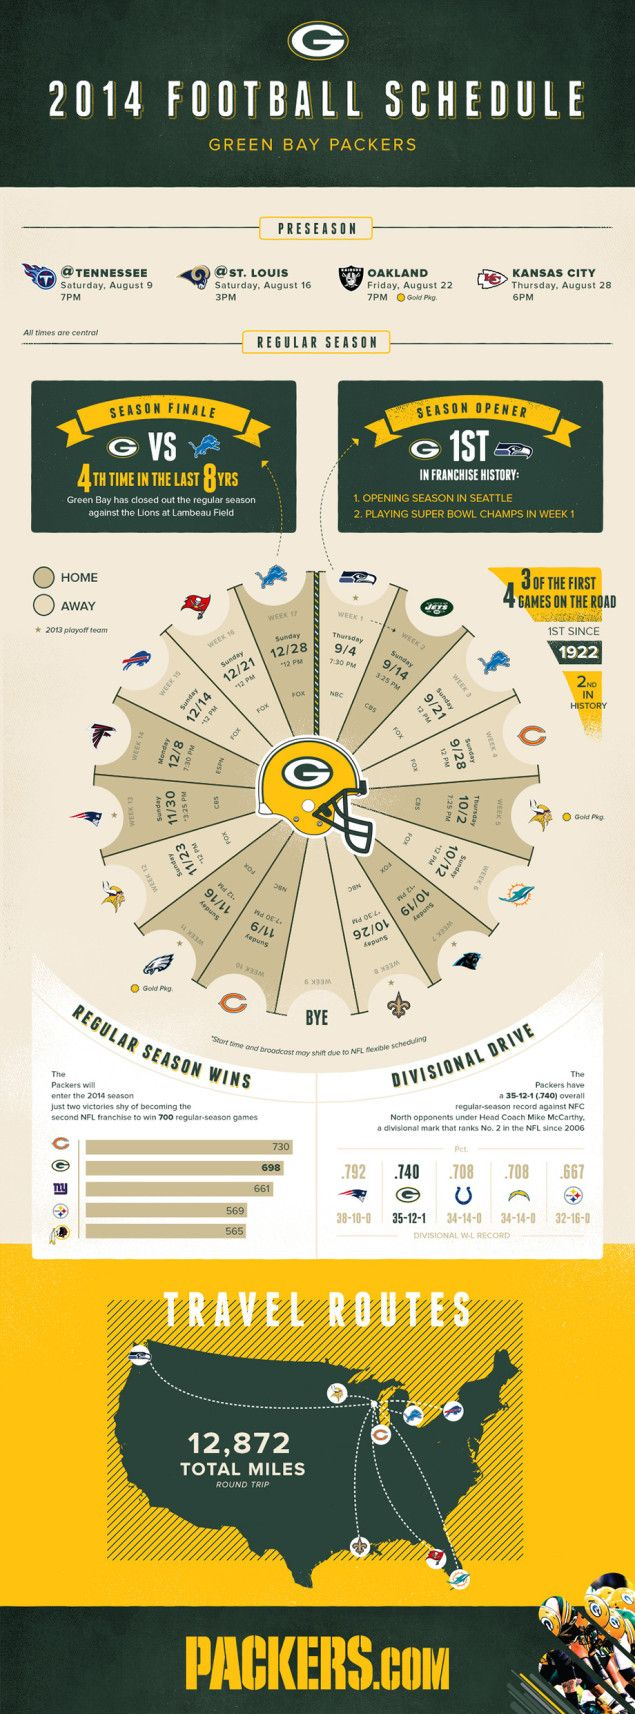 Green Bay Packers 2014 Schedule Green Bay Packers Green Bay Packers Football Green Bay